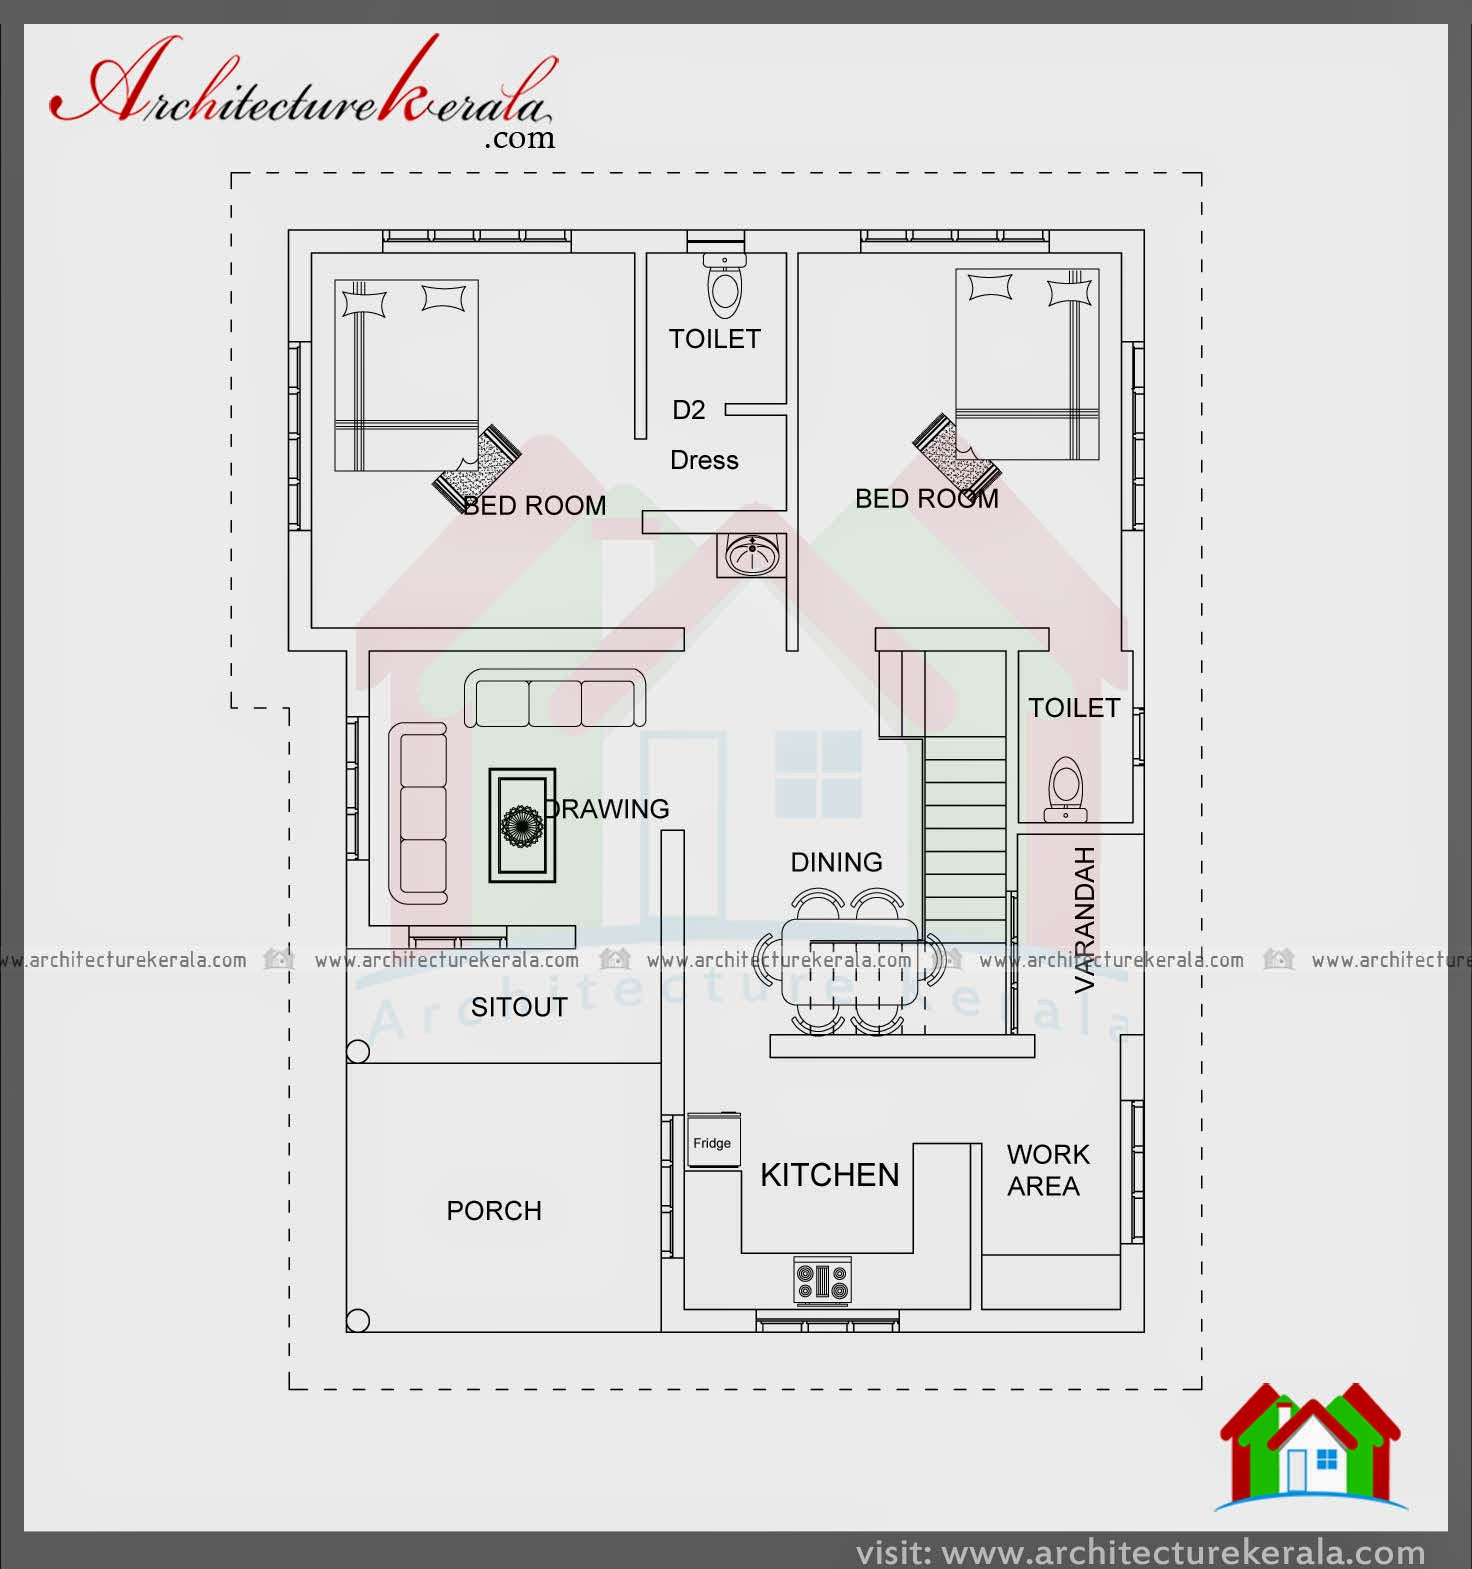 SQFT SINGLE STORIED HOUSE PLAN AND ELEVATION ARCHITECTURE